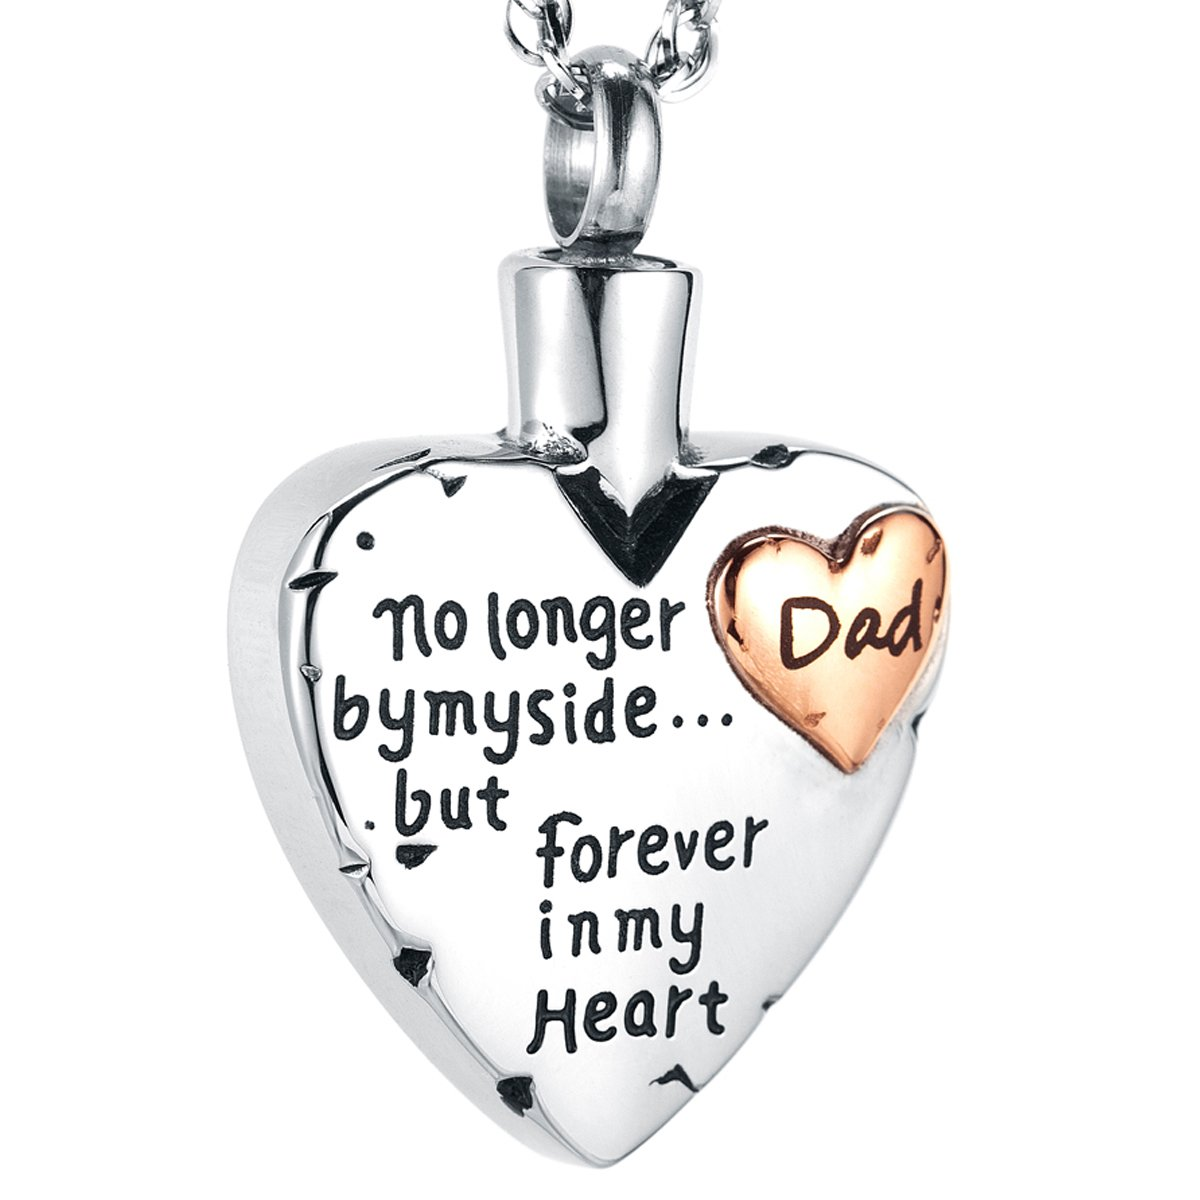 IMEIM Heart Cremation Urn Commemorative Necklace Ashes Screw Locket Stainless Steel Solid Meaningful Pendant Store Love Closed to My Heart Be Together Forever (Dad)